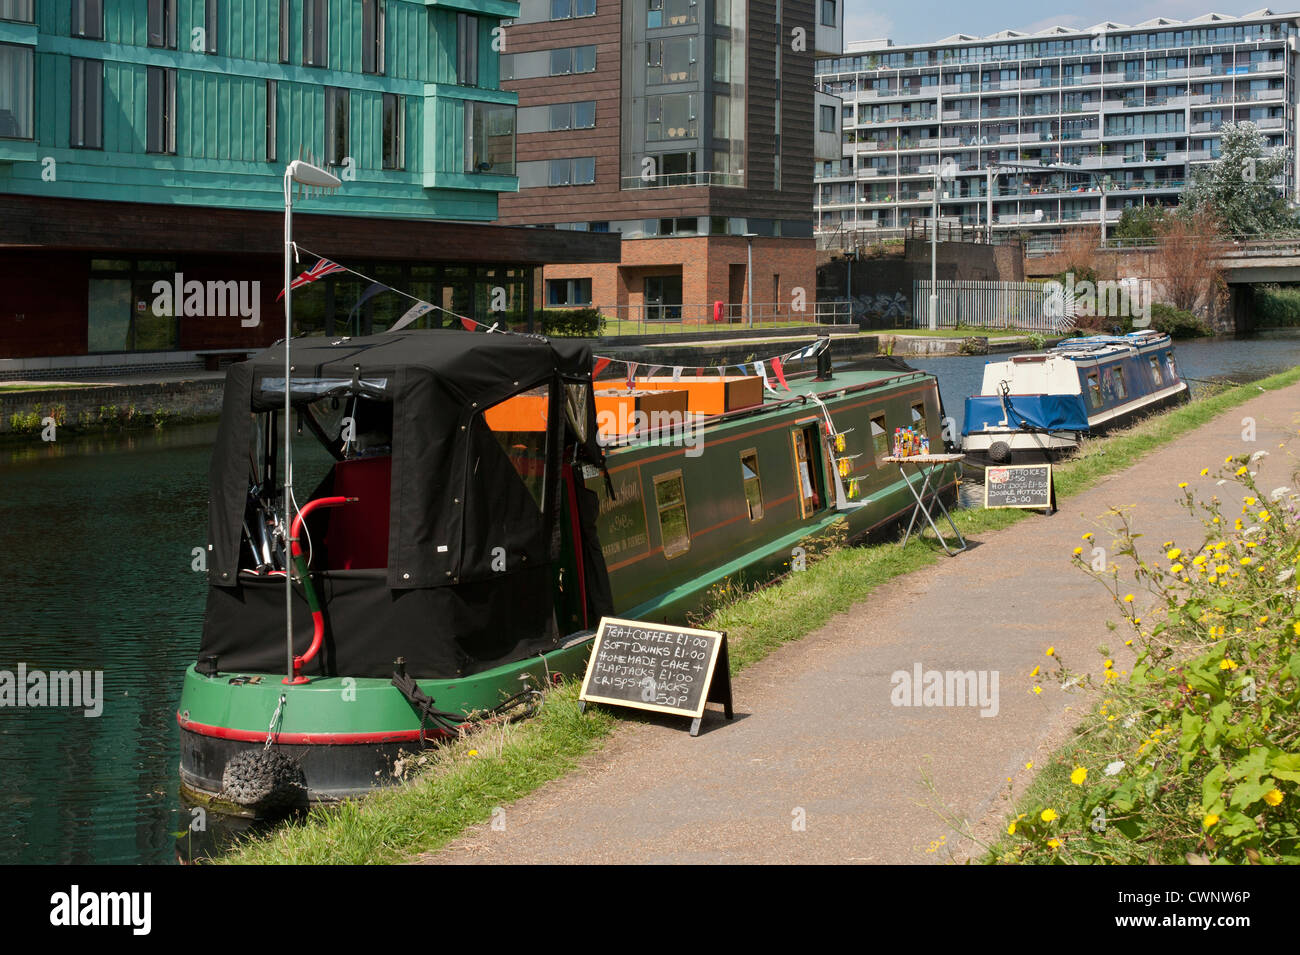 Narrow Boat on the Regent's Canal, London offering cafe services - Stock Image